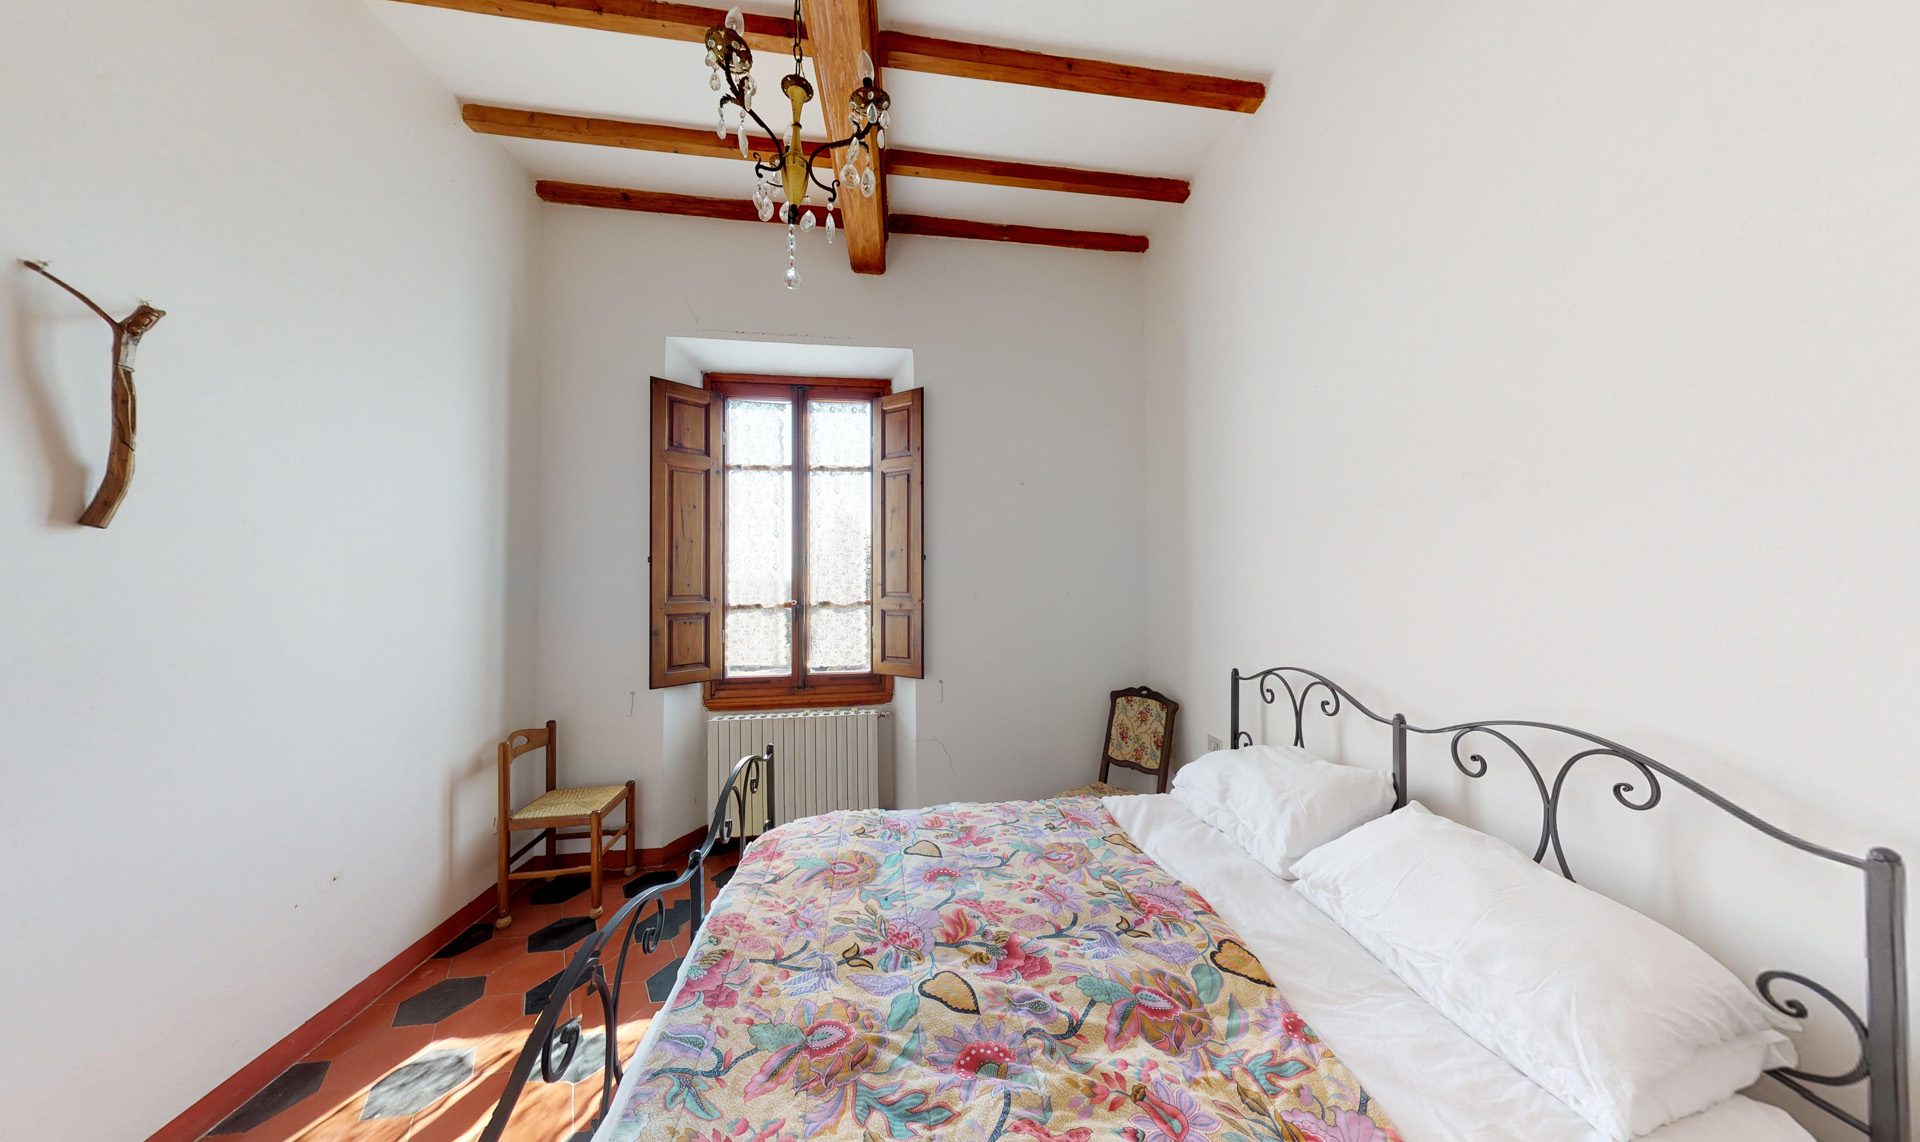 Villa Cicogna king bedroom with beamed ceiling and whitewashed walls